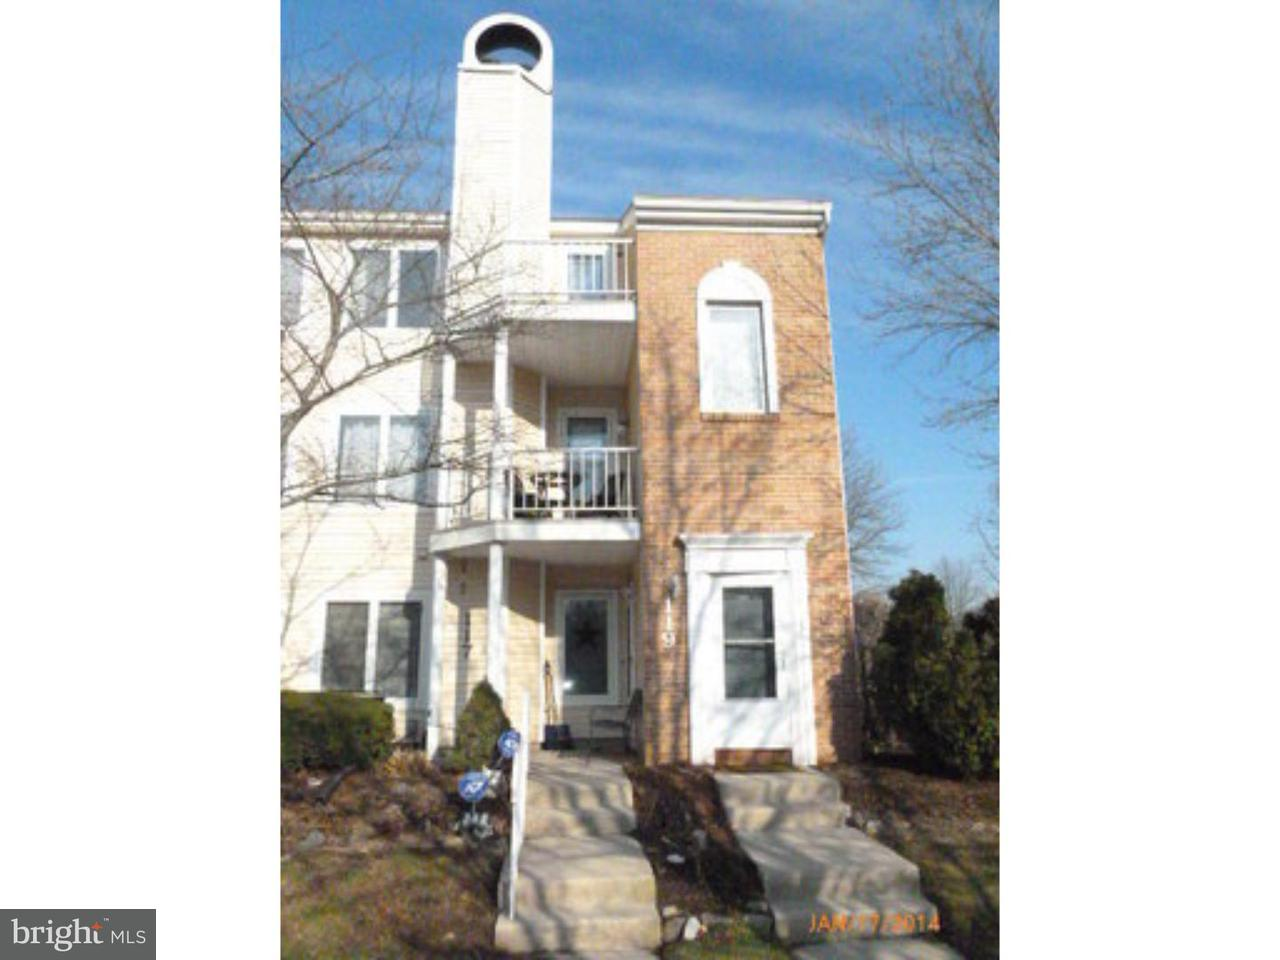 Townhouse for Rent at 119 PAMELA CT #620 Levittown, Pennsylvania 19057 United States